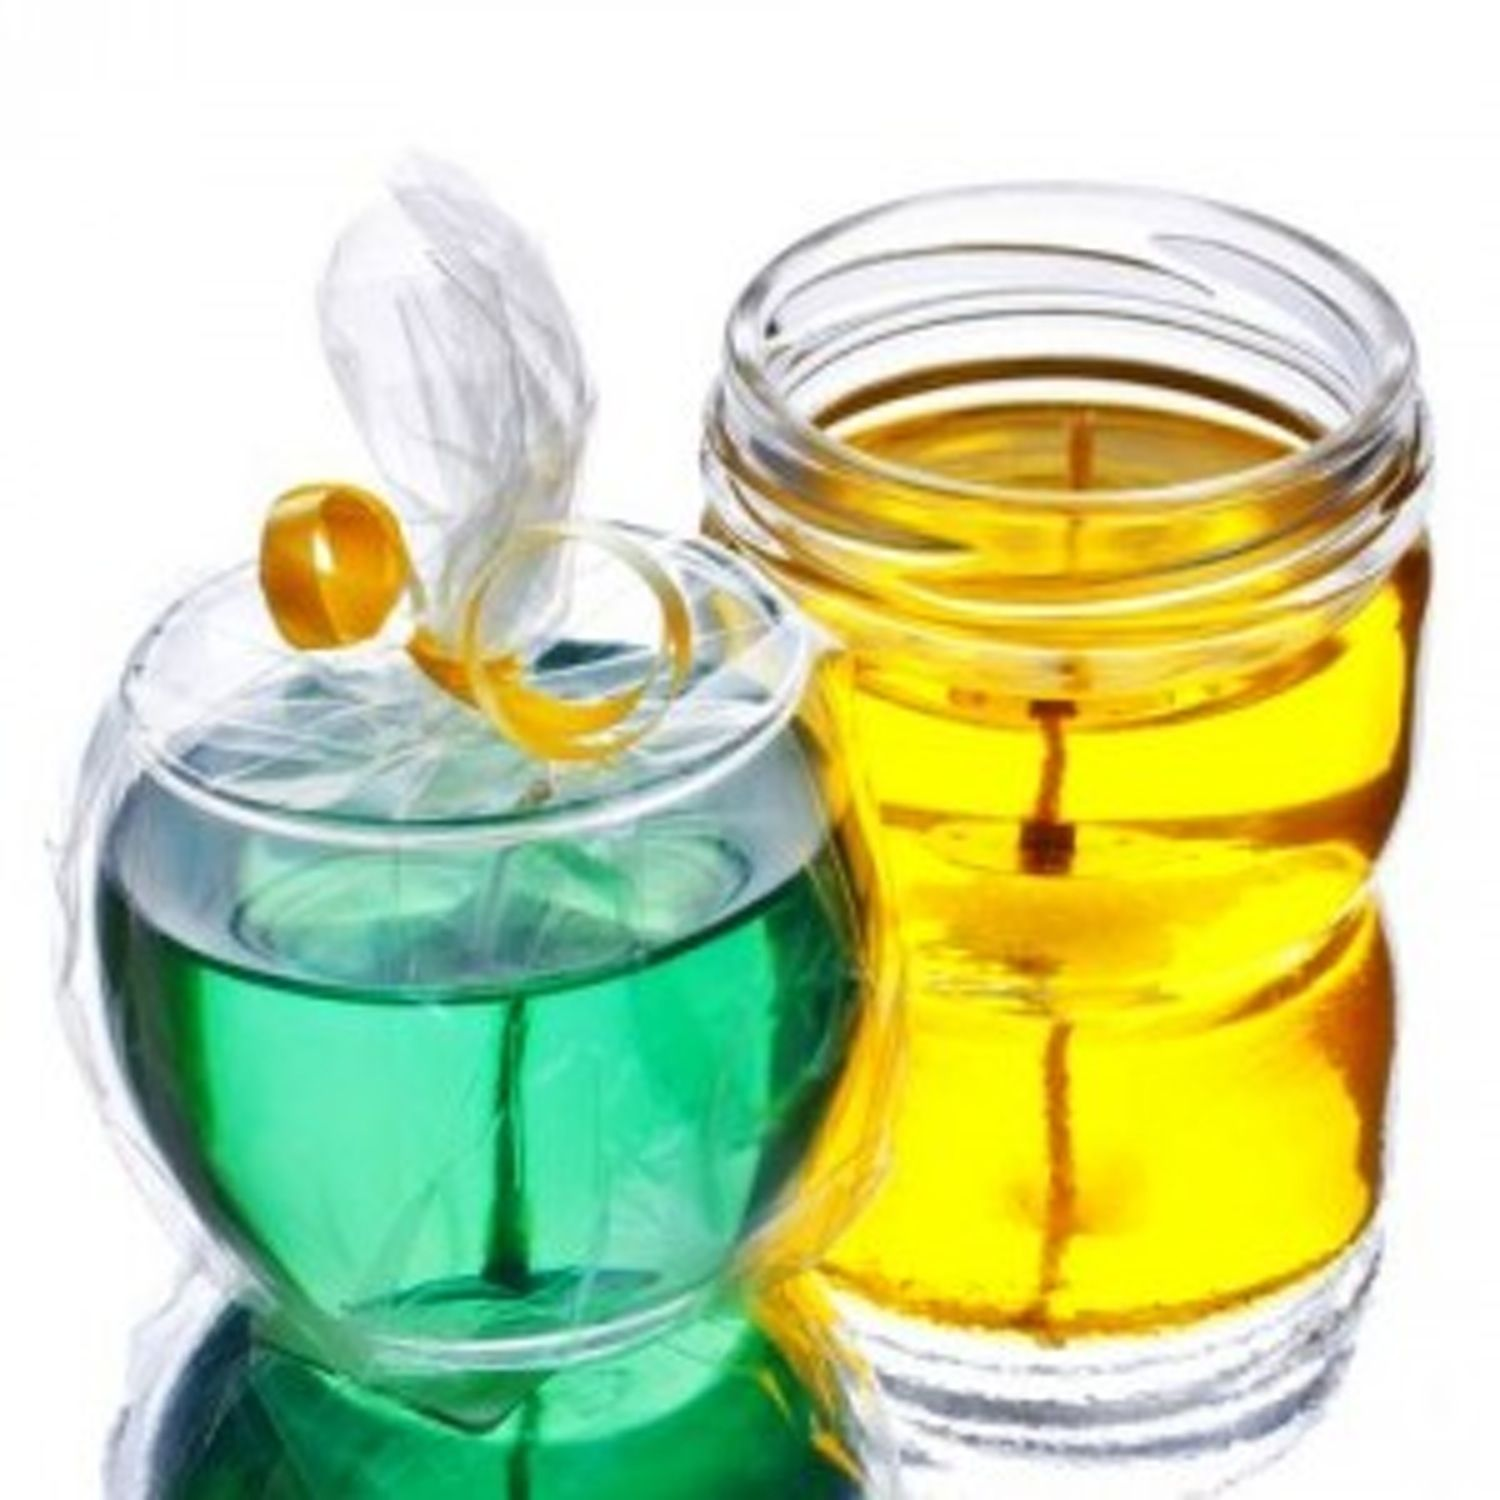 Try This Make Your Own Gel Air Fresheners Gel candles